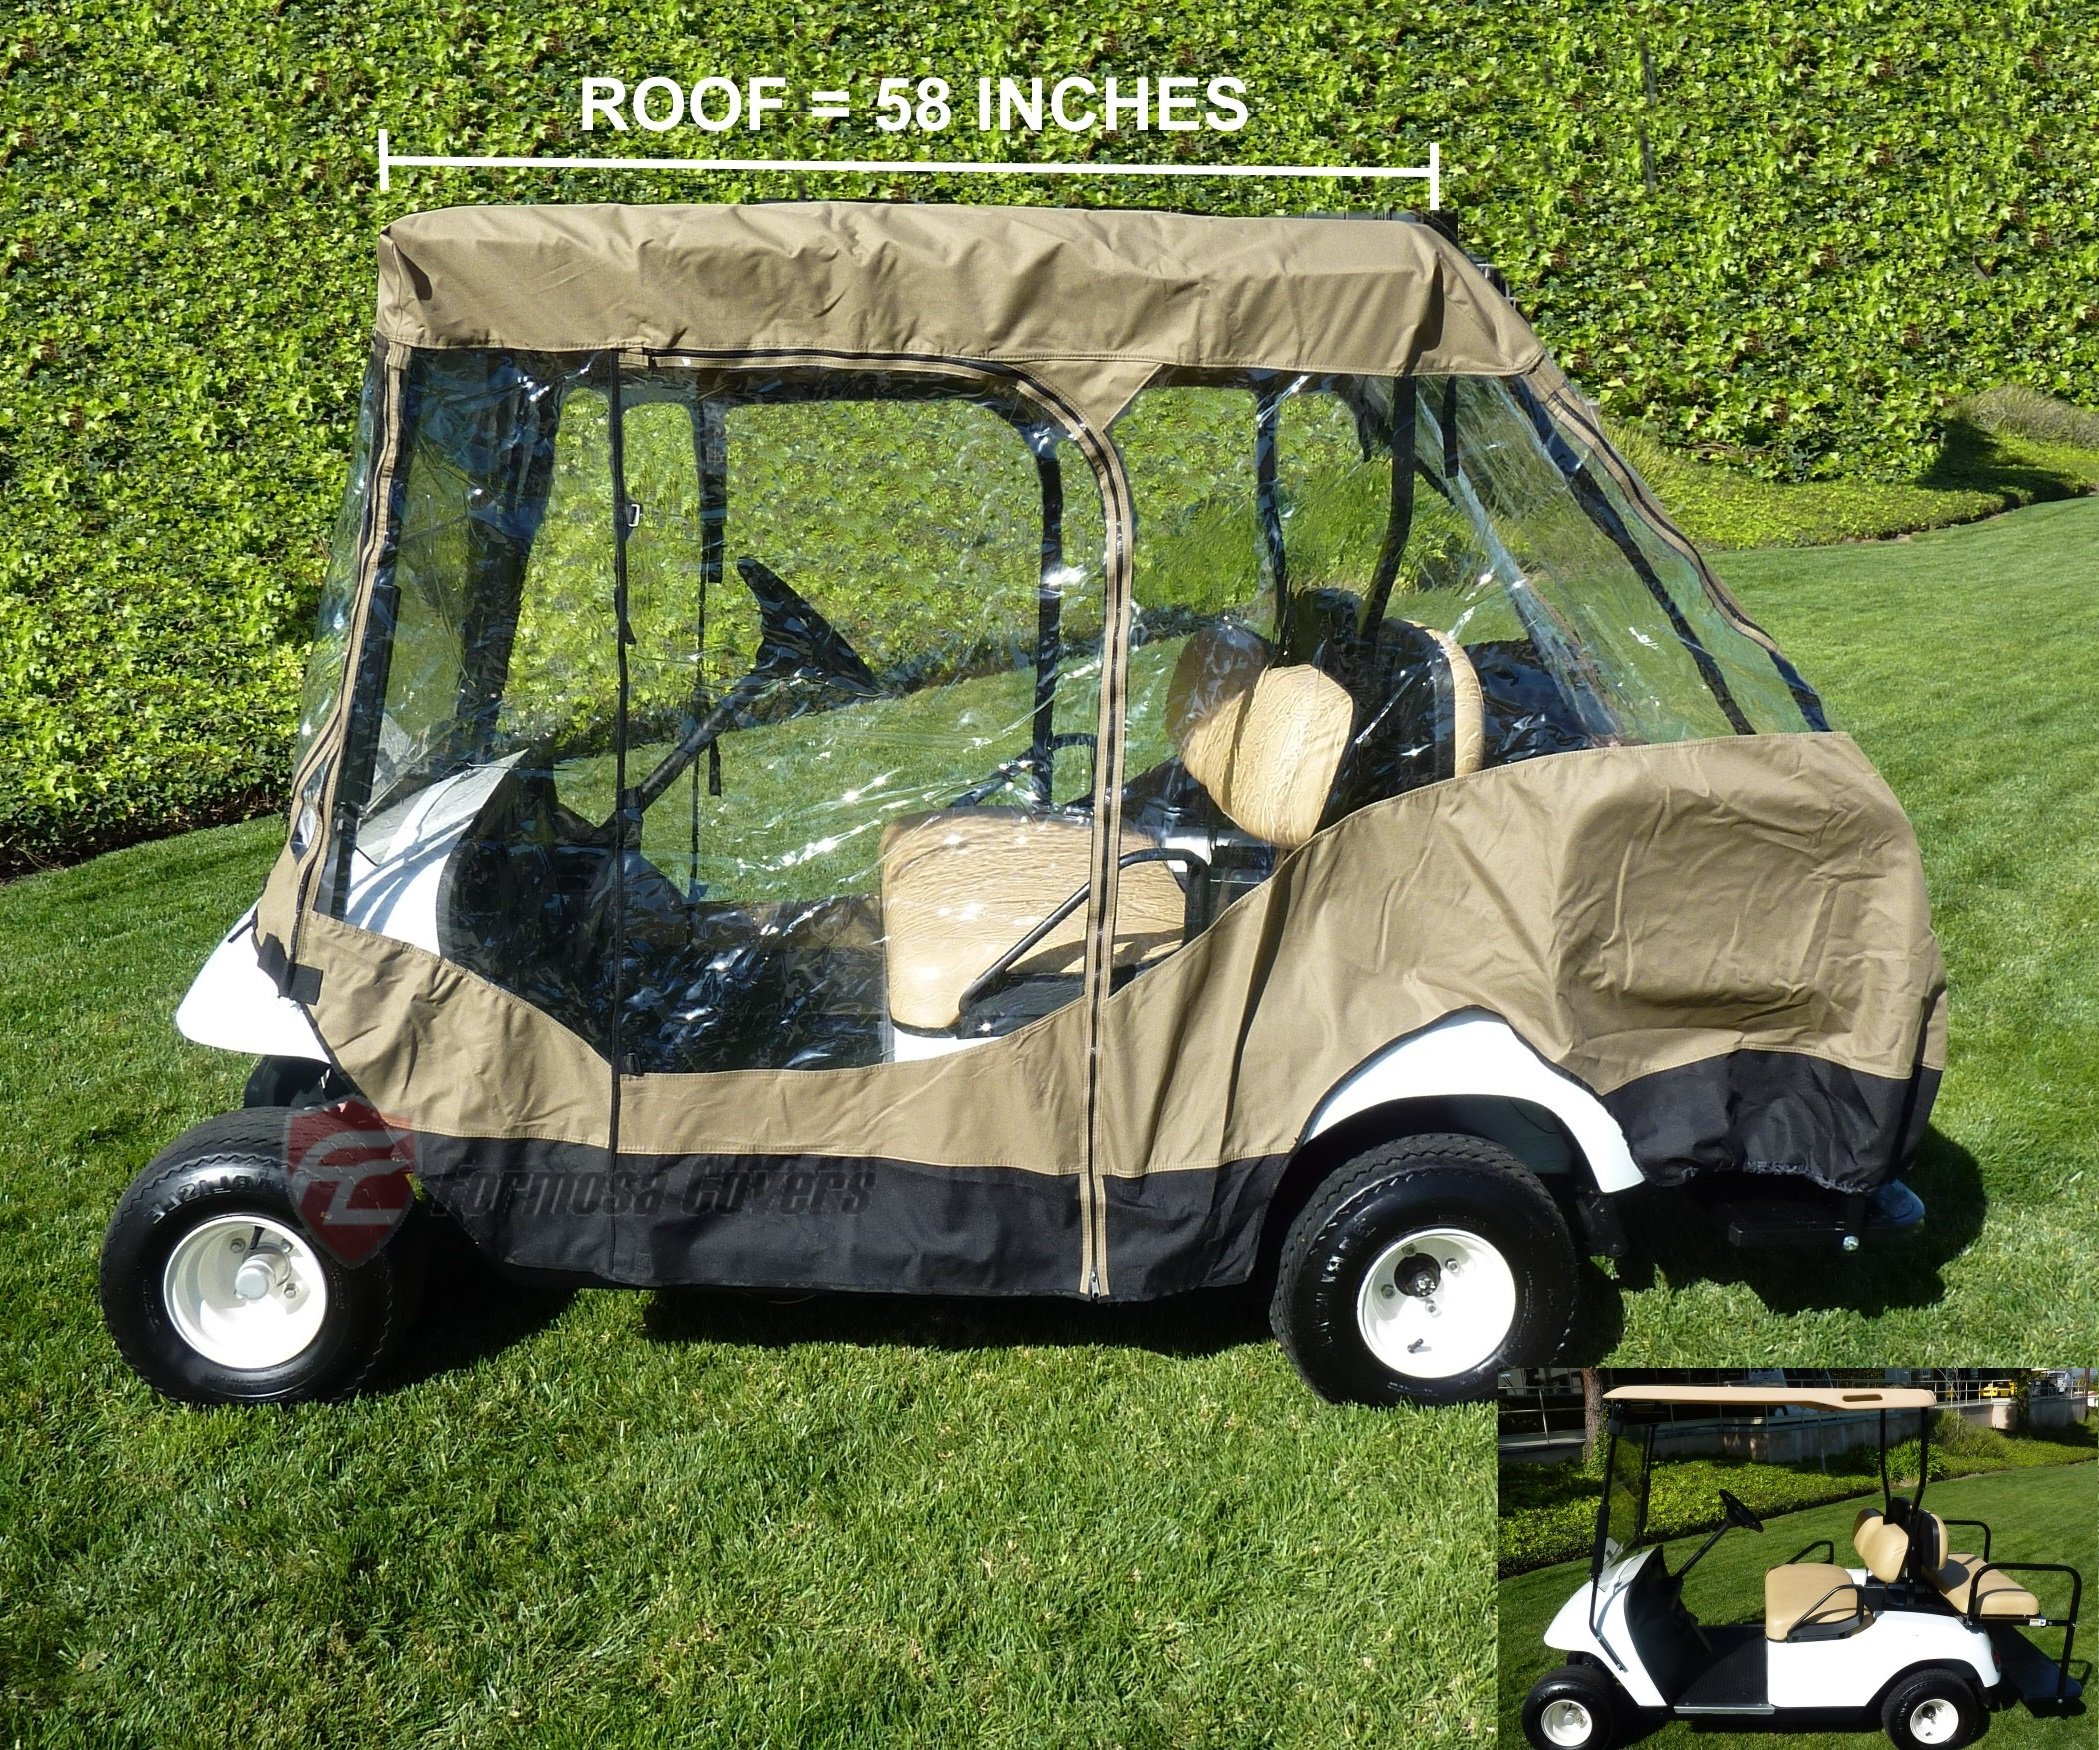 Premium Tight Weave Golf Cart Driving Enclosure for 4 seater with 2 seater roof up to 58'' by Formosa Covers (Image #4)